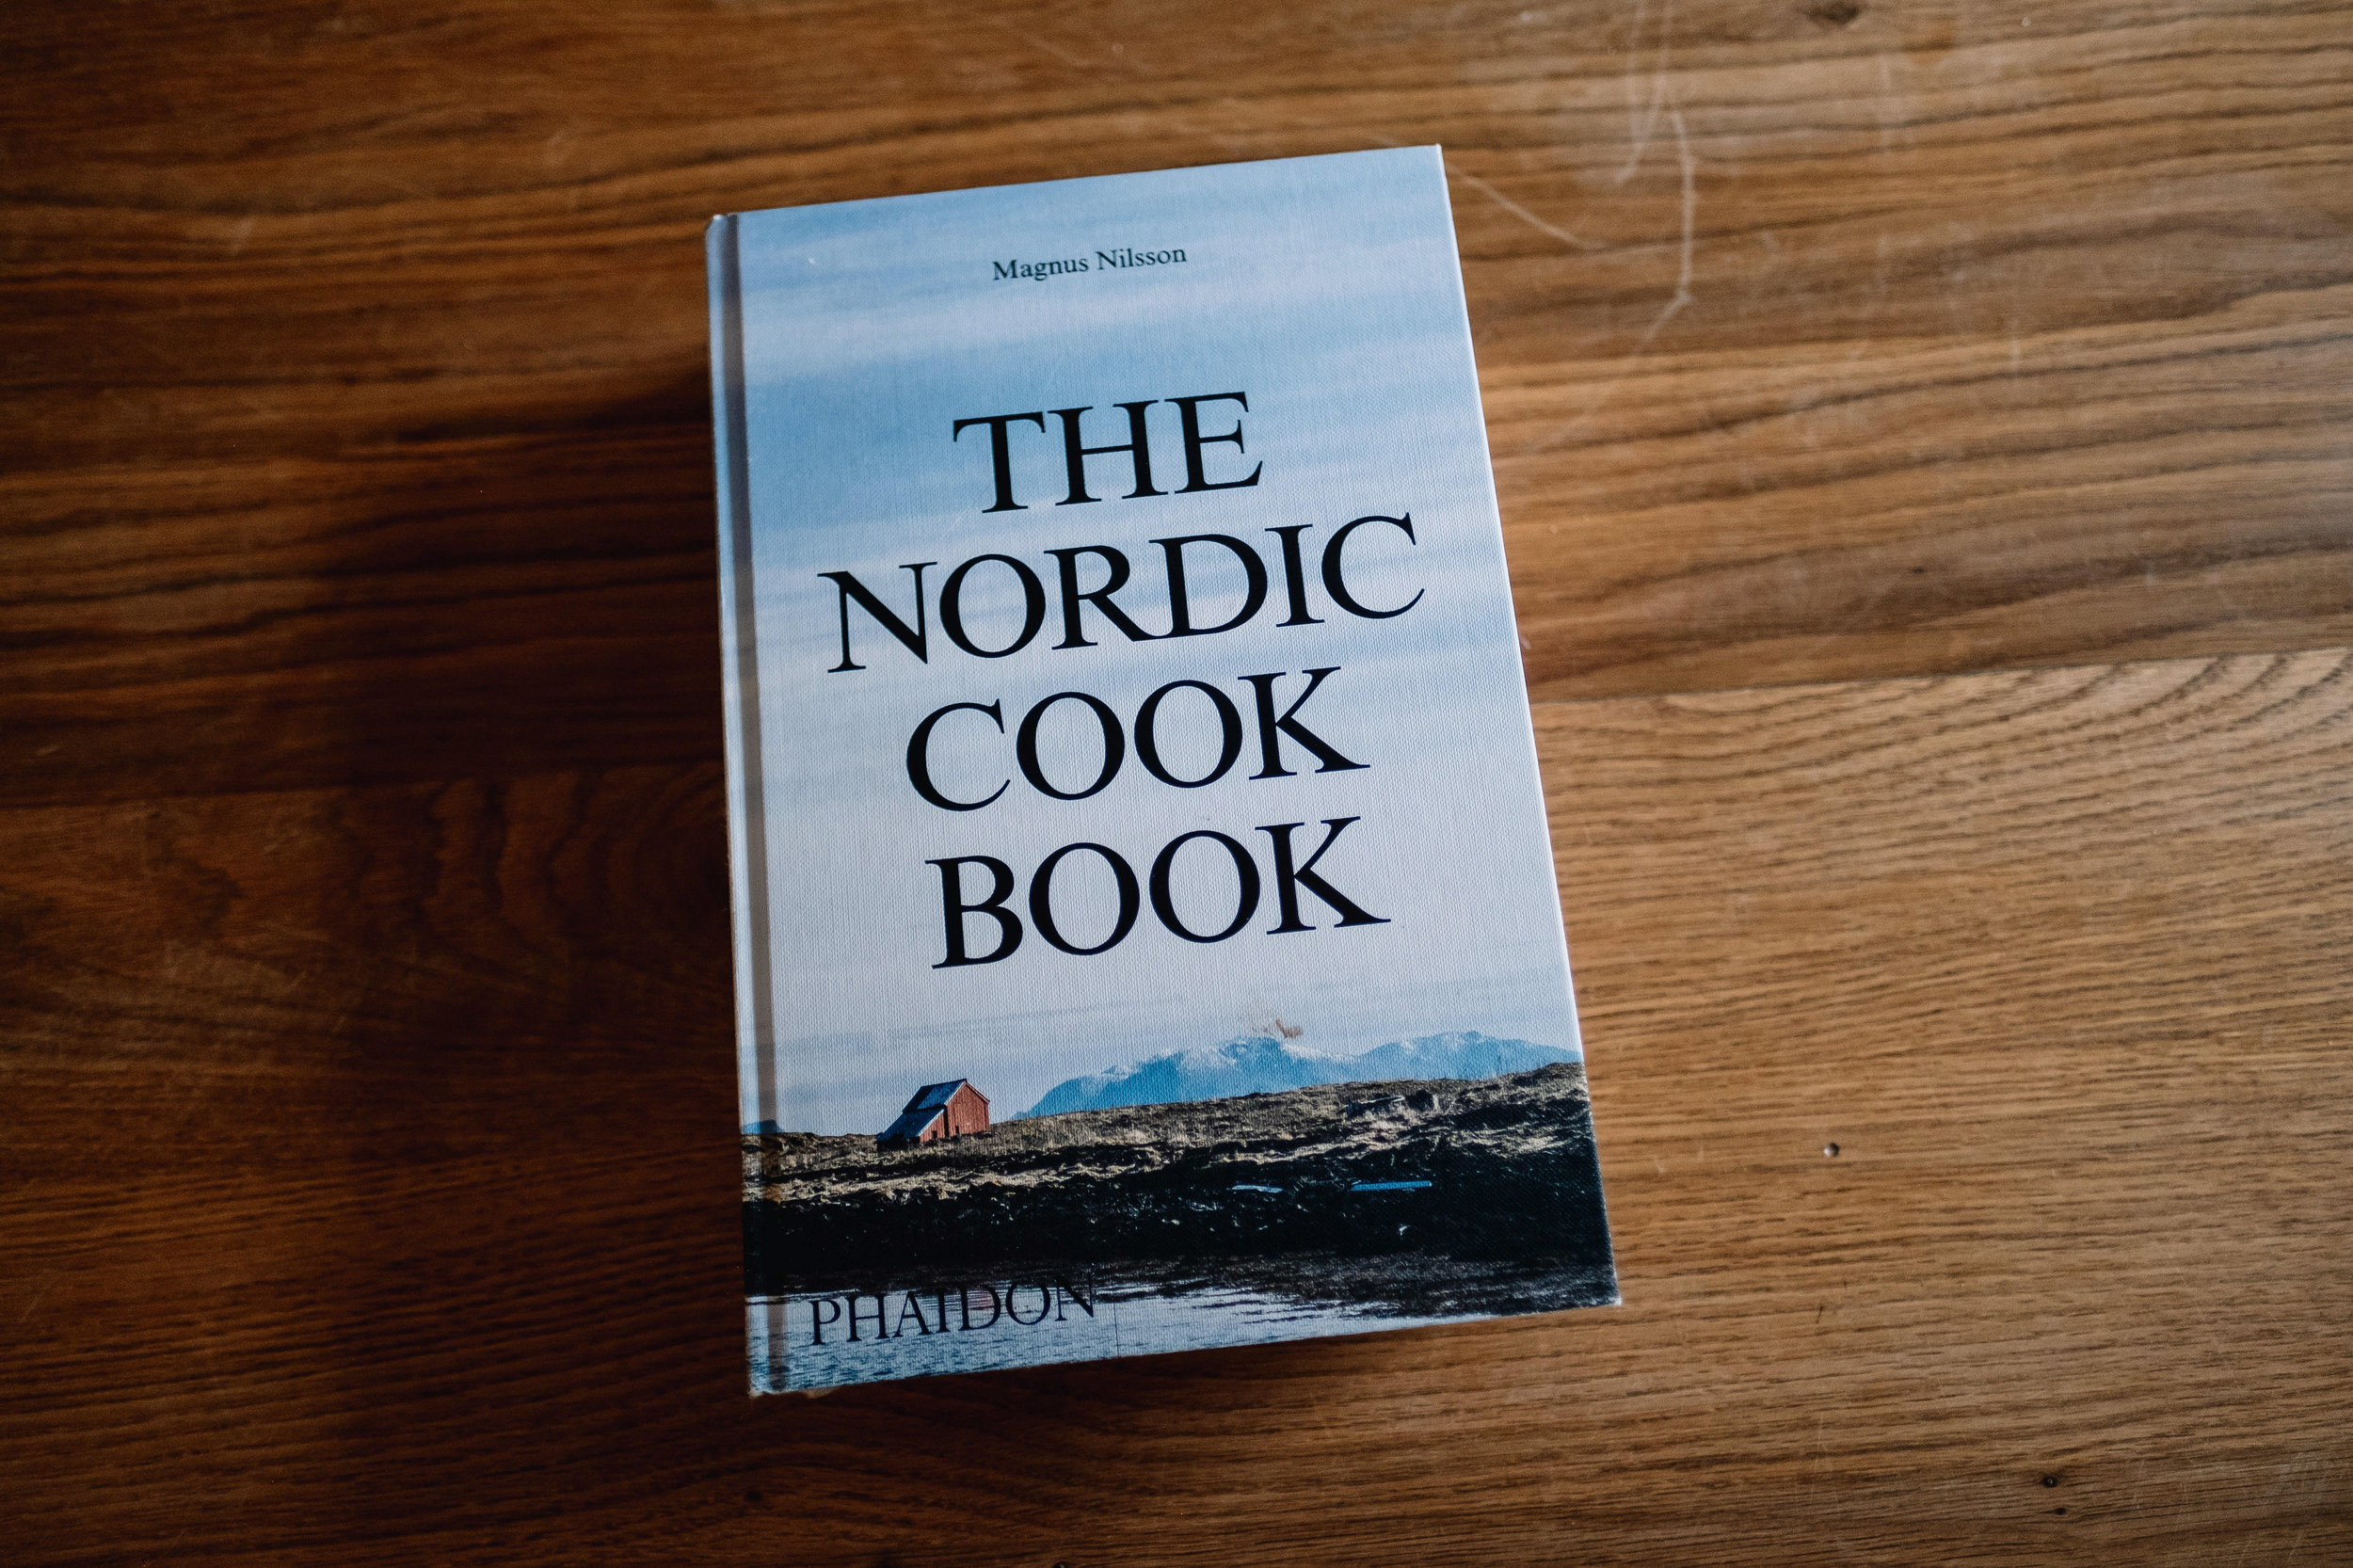 The Nordic Cook Book on the floor of the kitchen